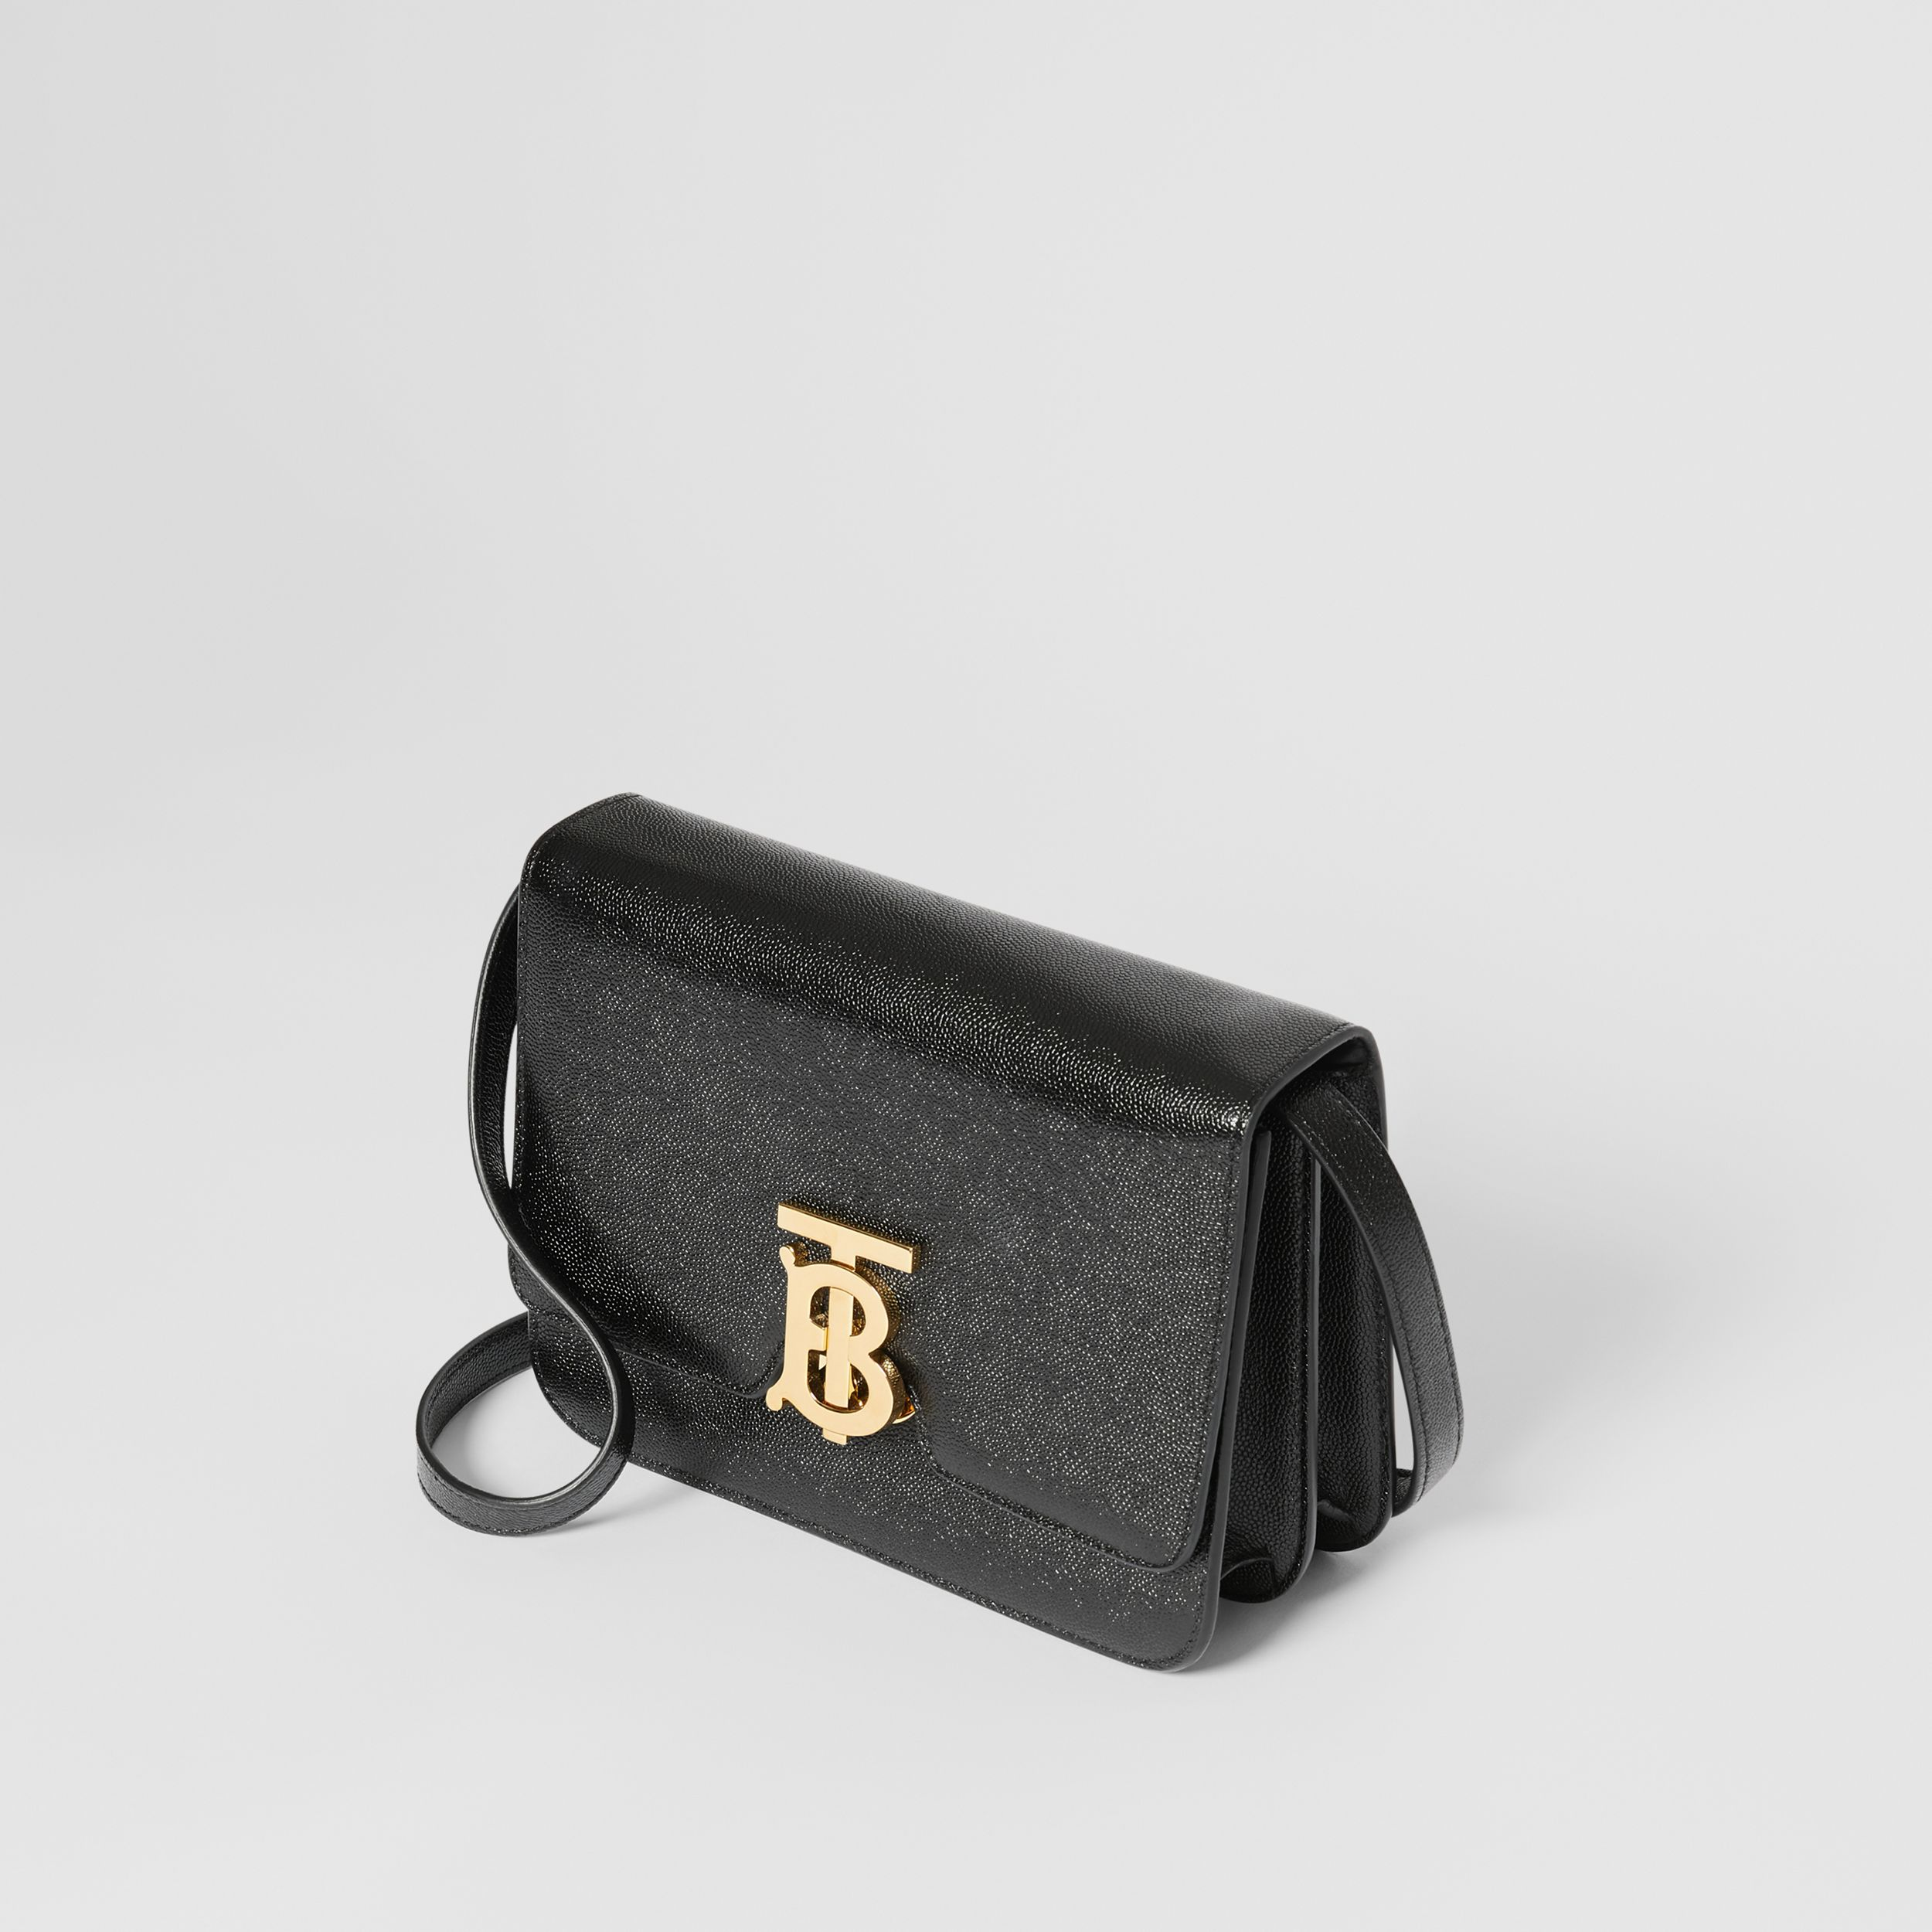 Small Grainy Leather TB Bag in Black | Burberry - 4